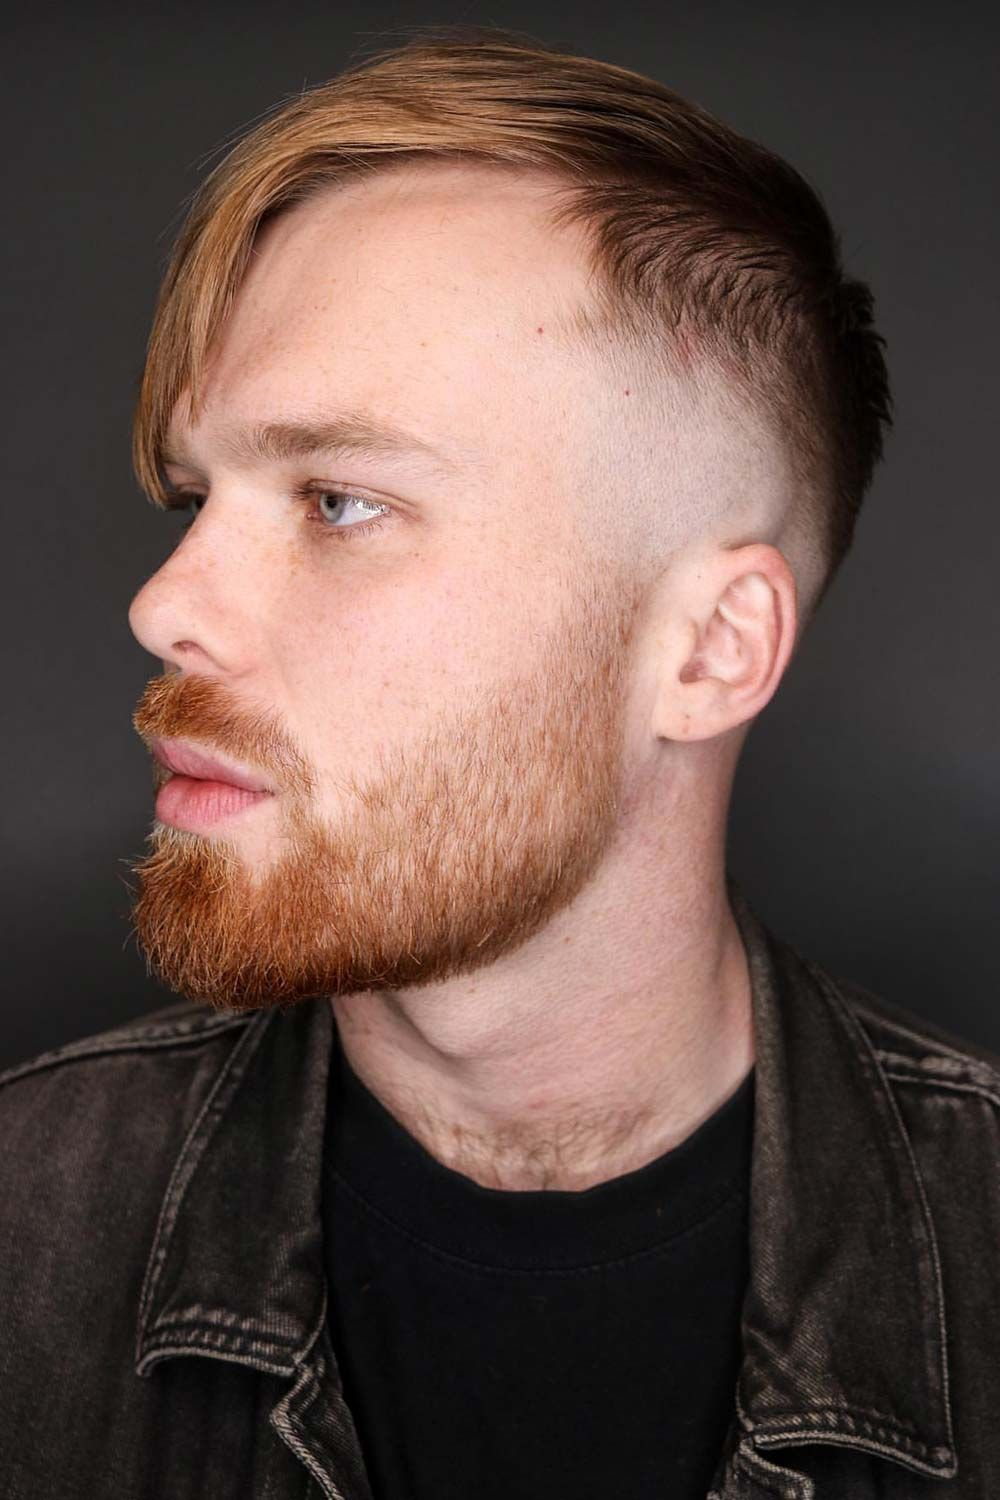 47+ Mens haircuts that cover forehead trends